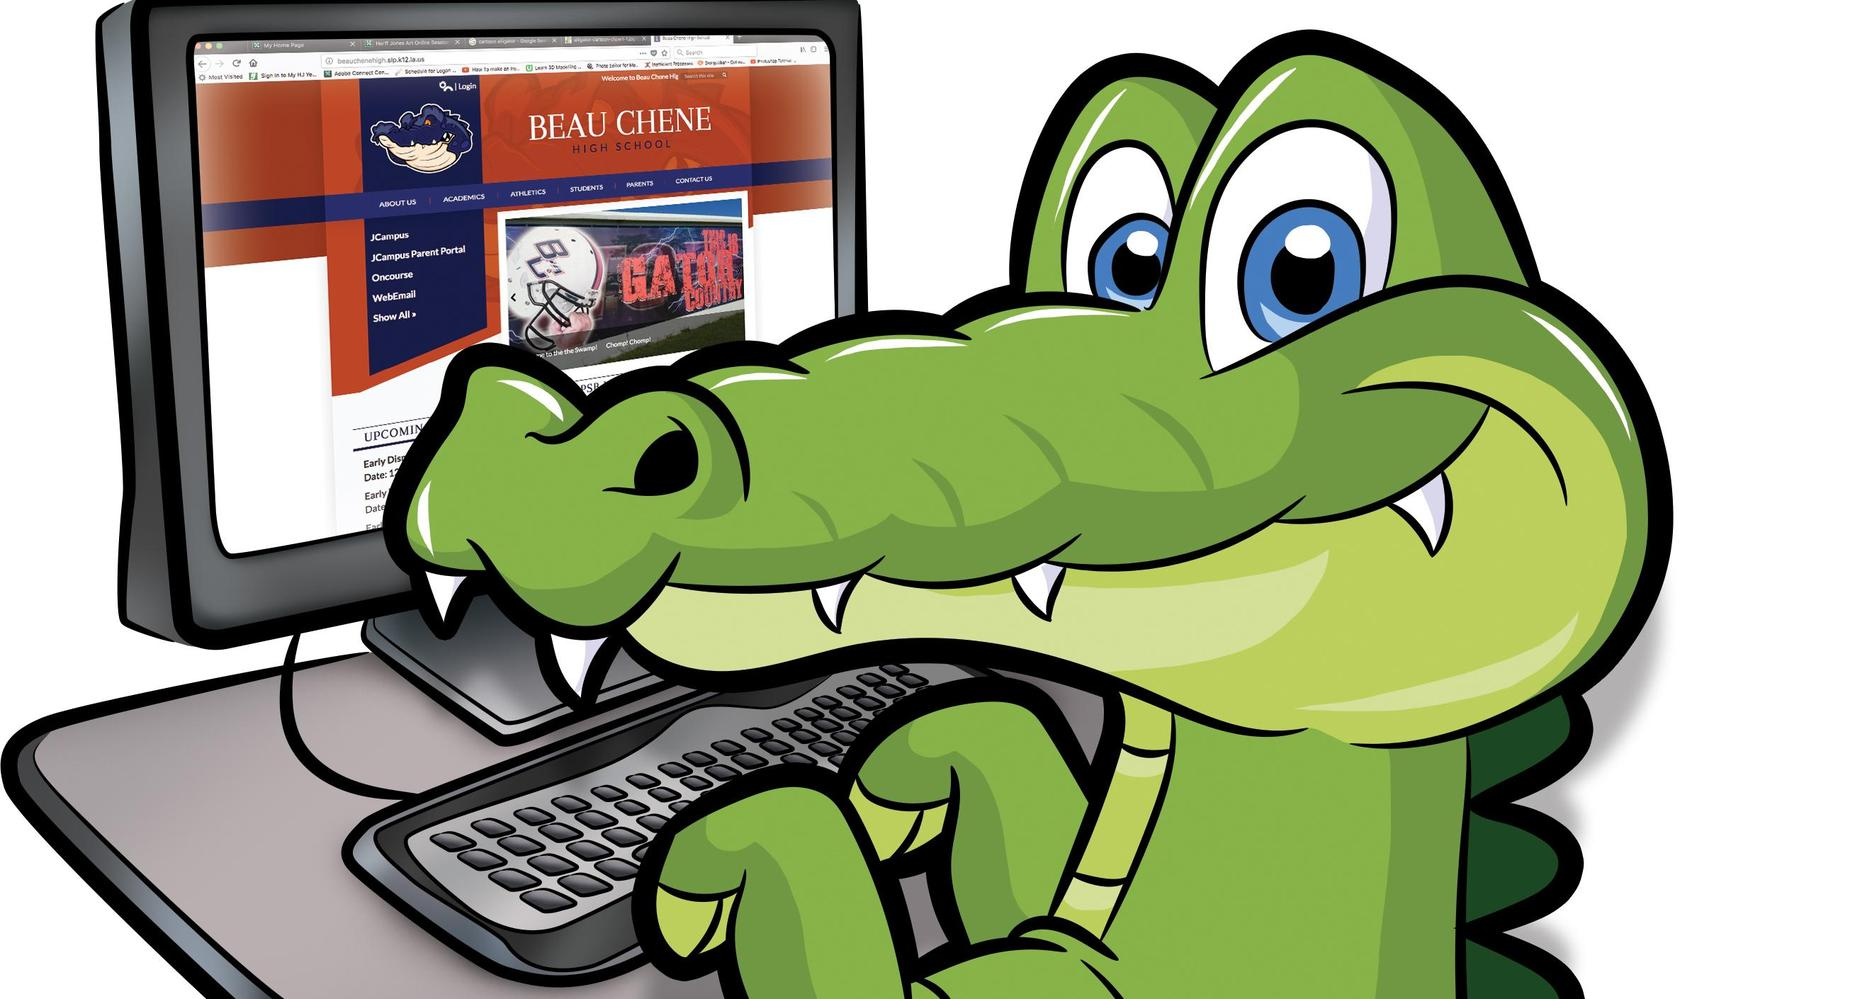 Gator working on the computer-looking at Beau Chene Website.